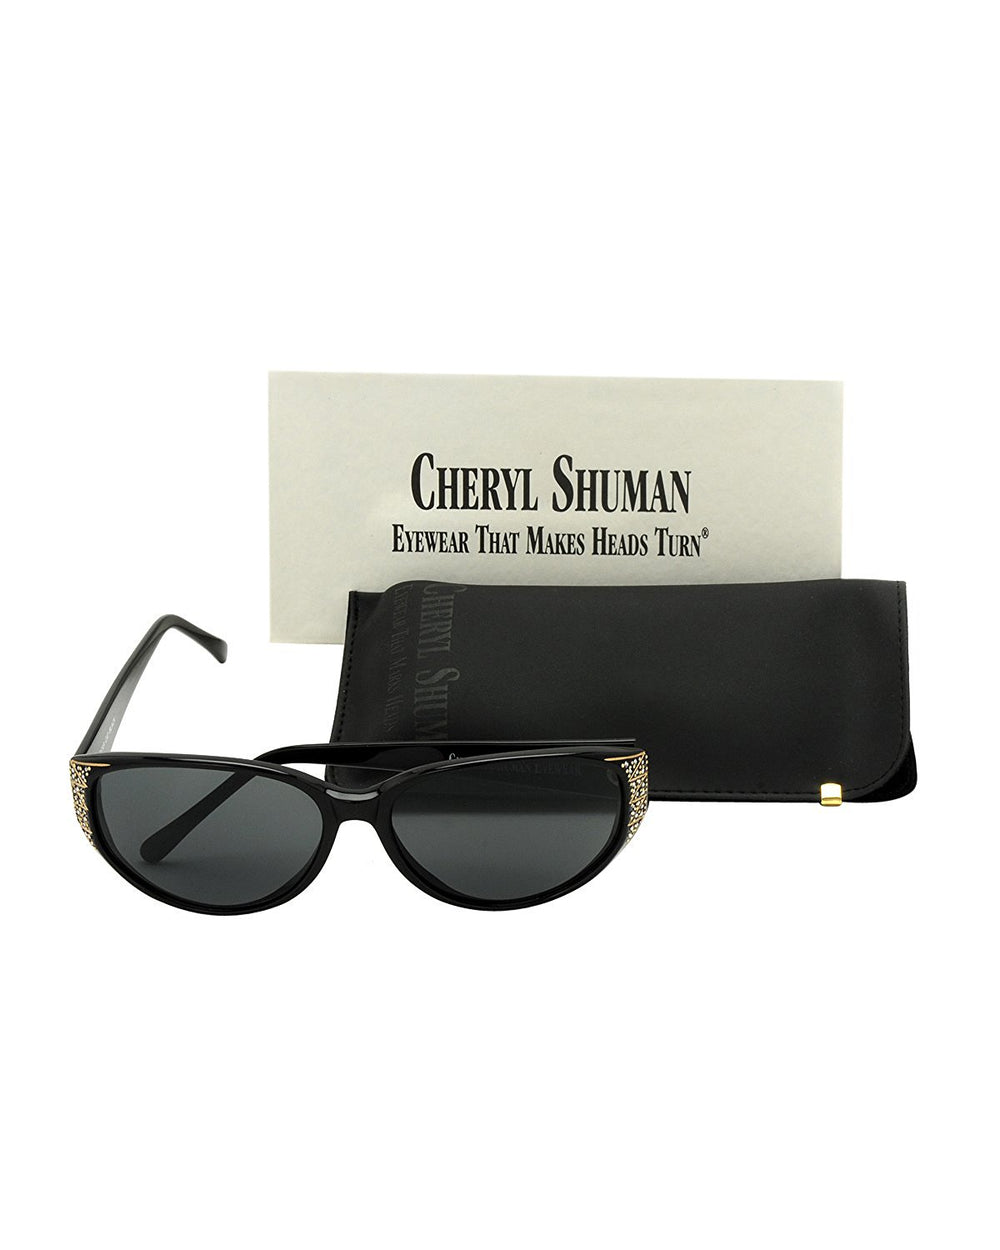 Cheryl Shuman Sunglasses Oscar Cat Black 58-15-132